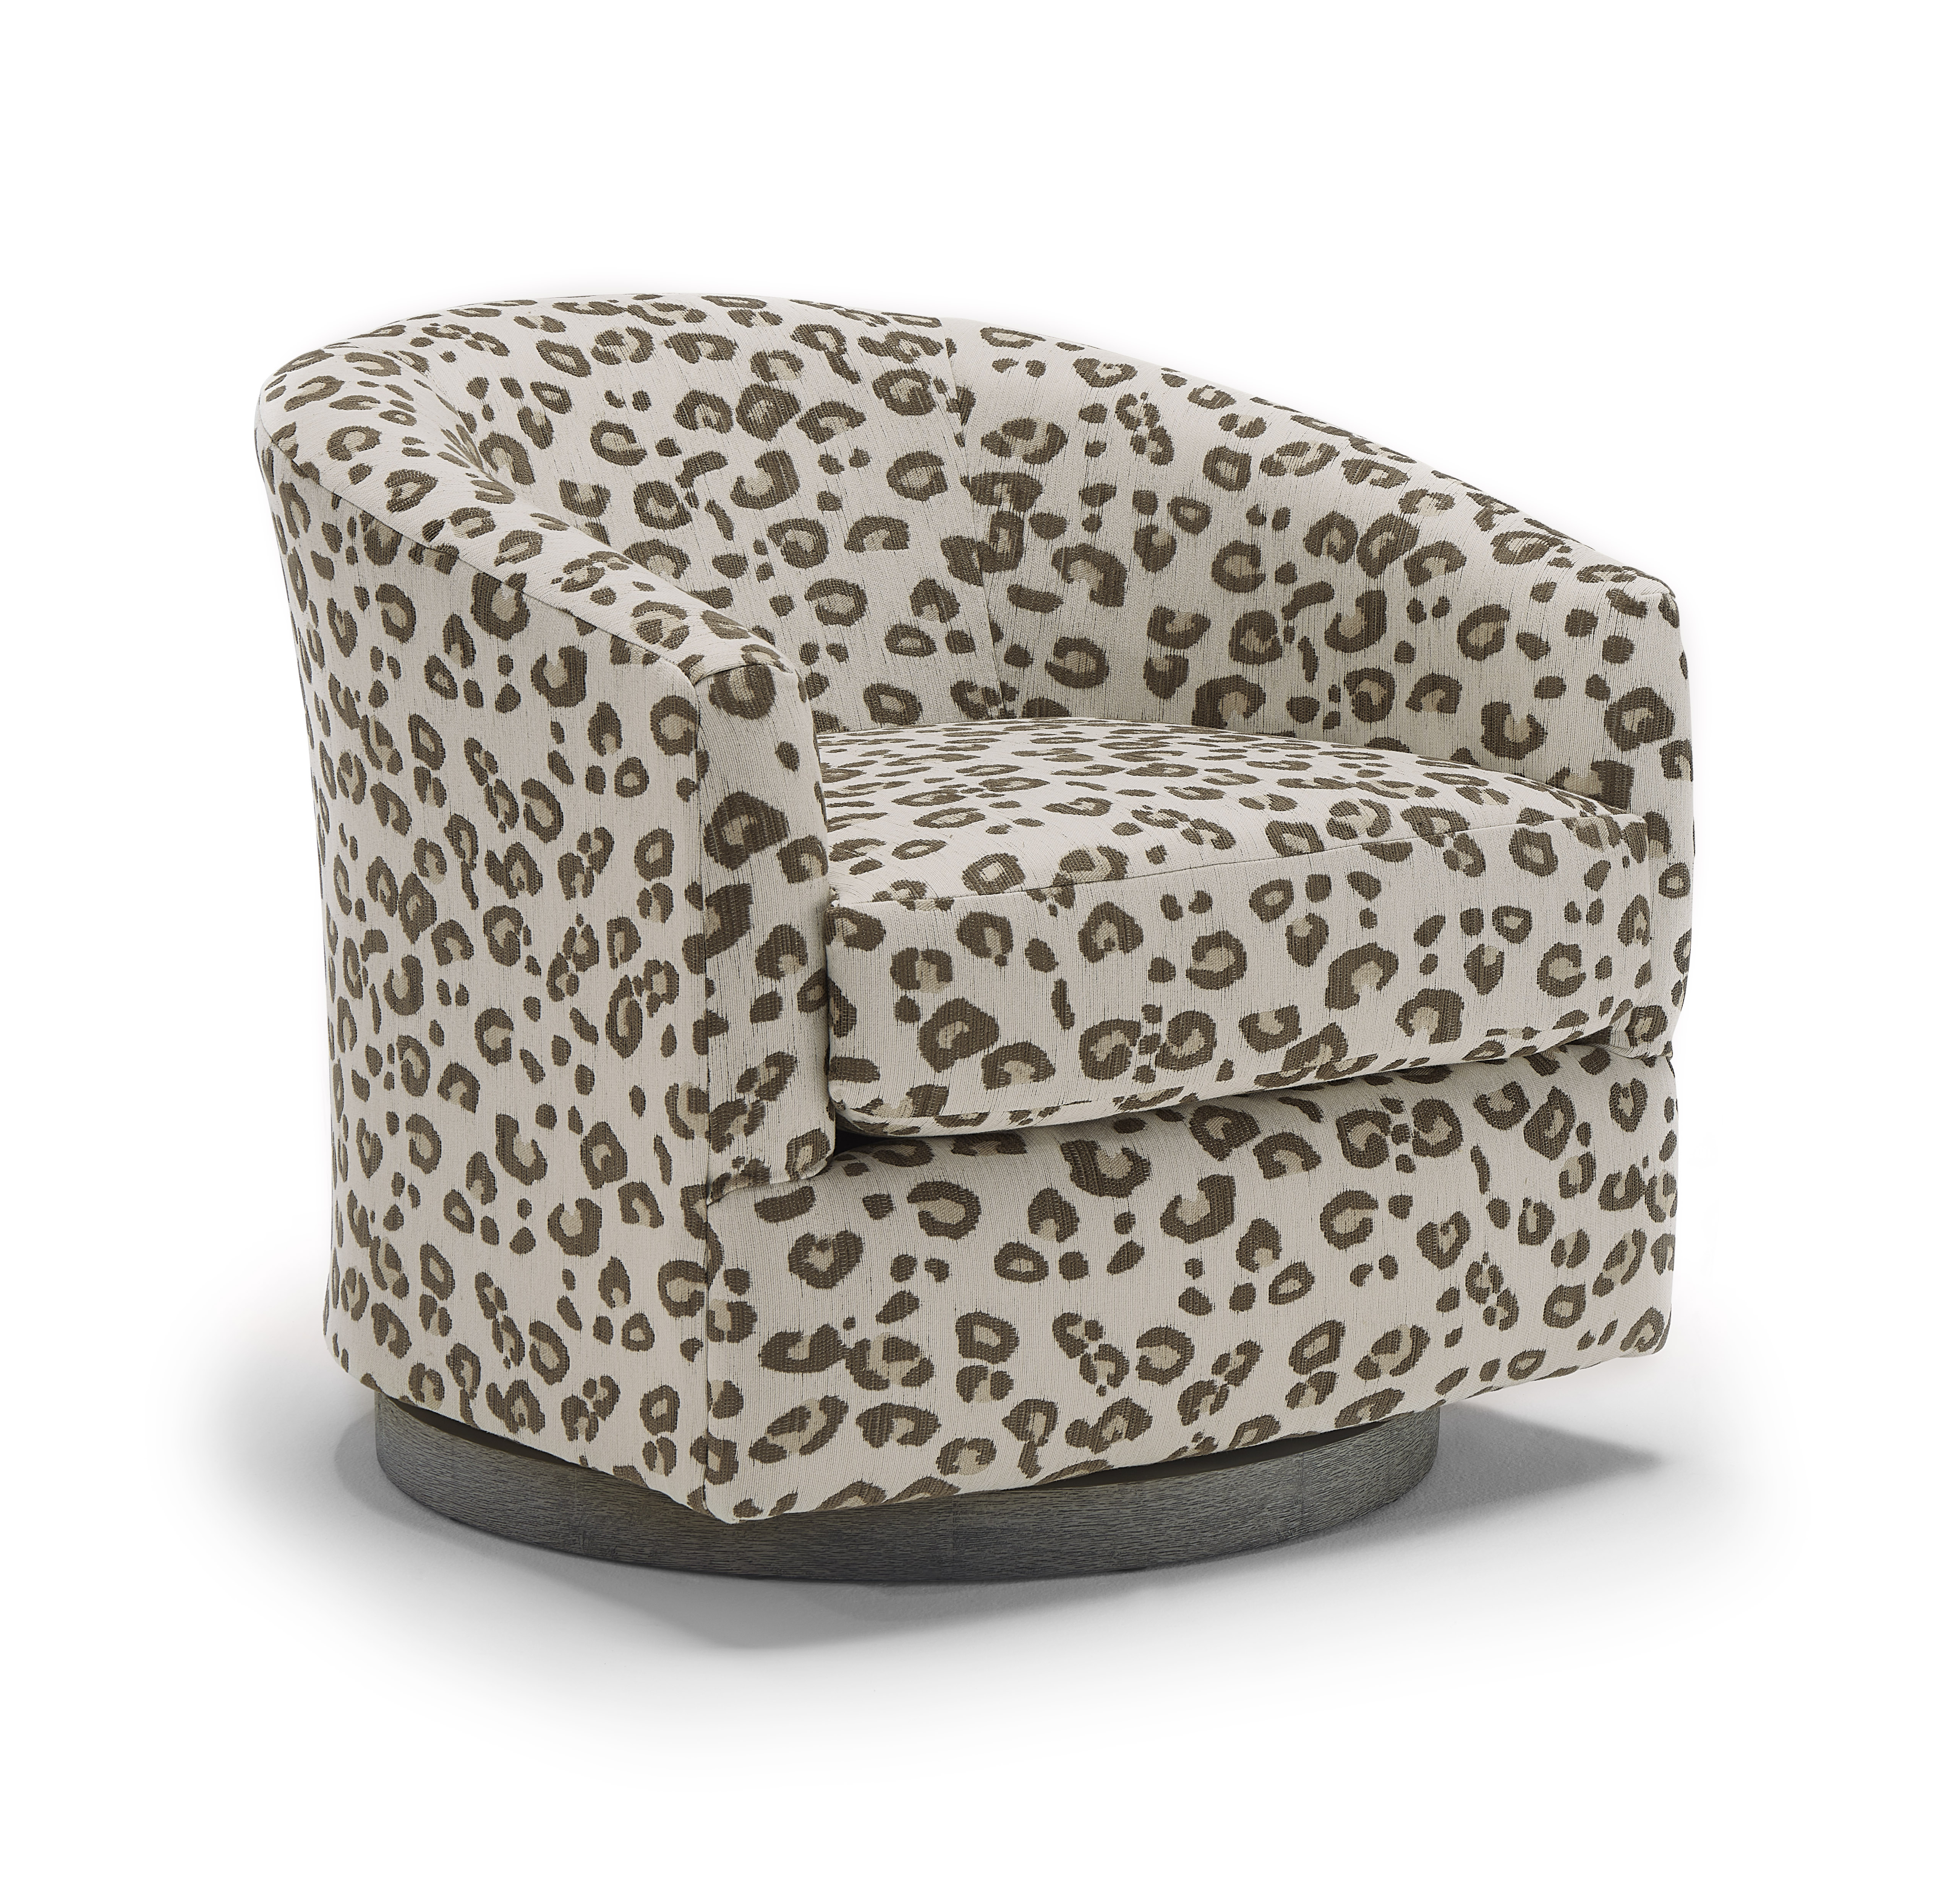 Ennely Swivel Chair by Best Home Furnishings at Powell's Furniture and Mattress